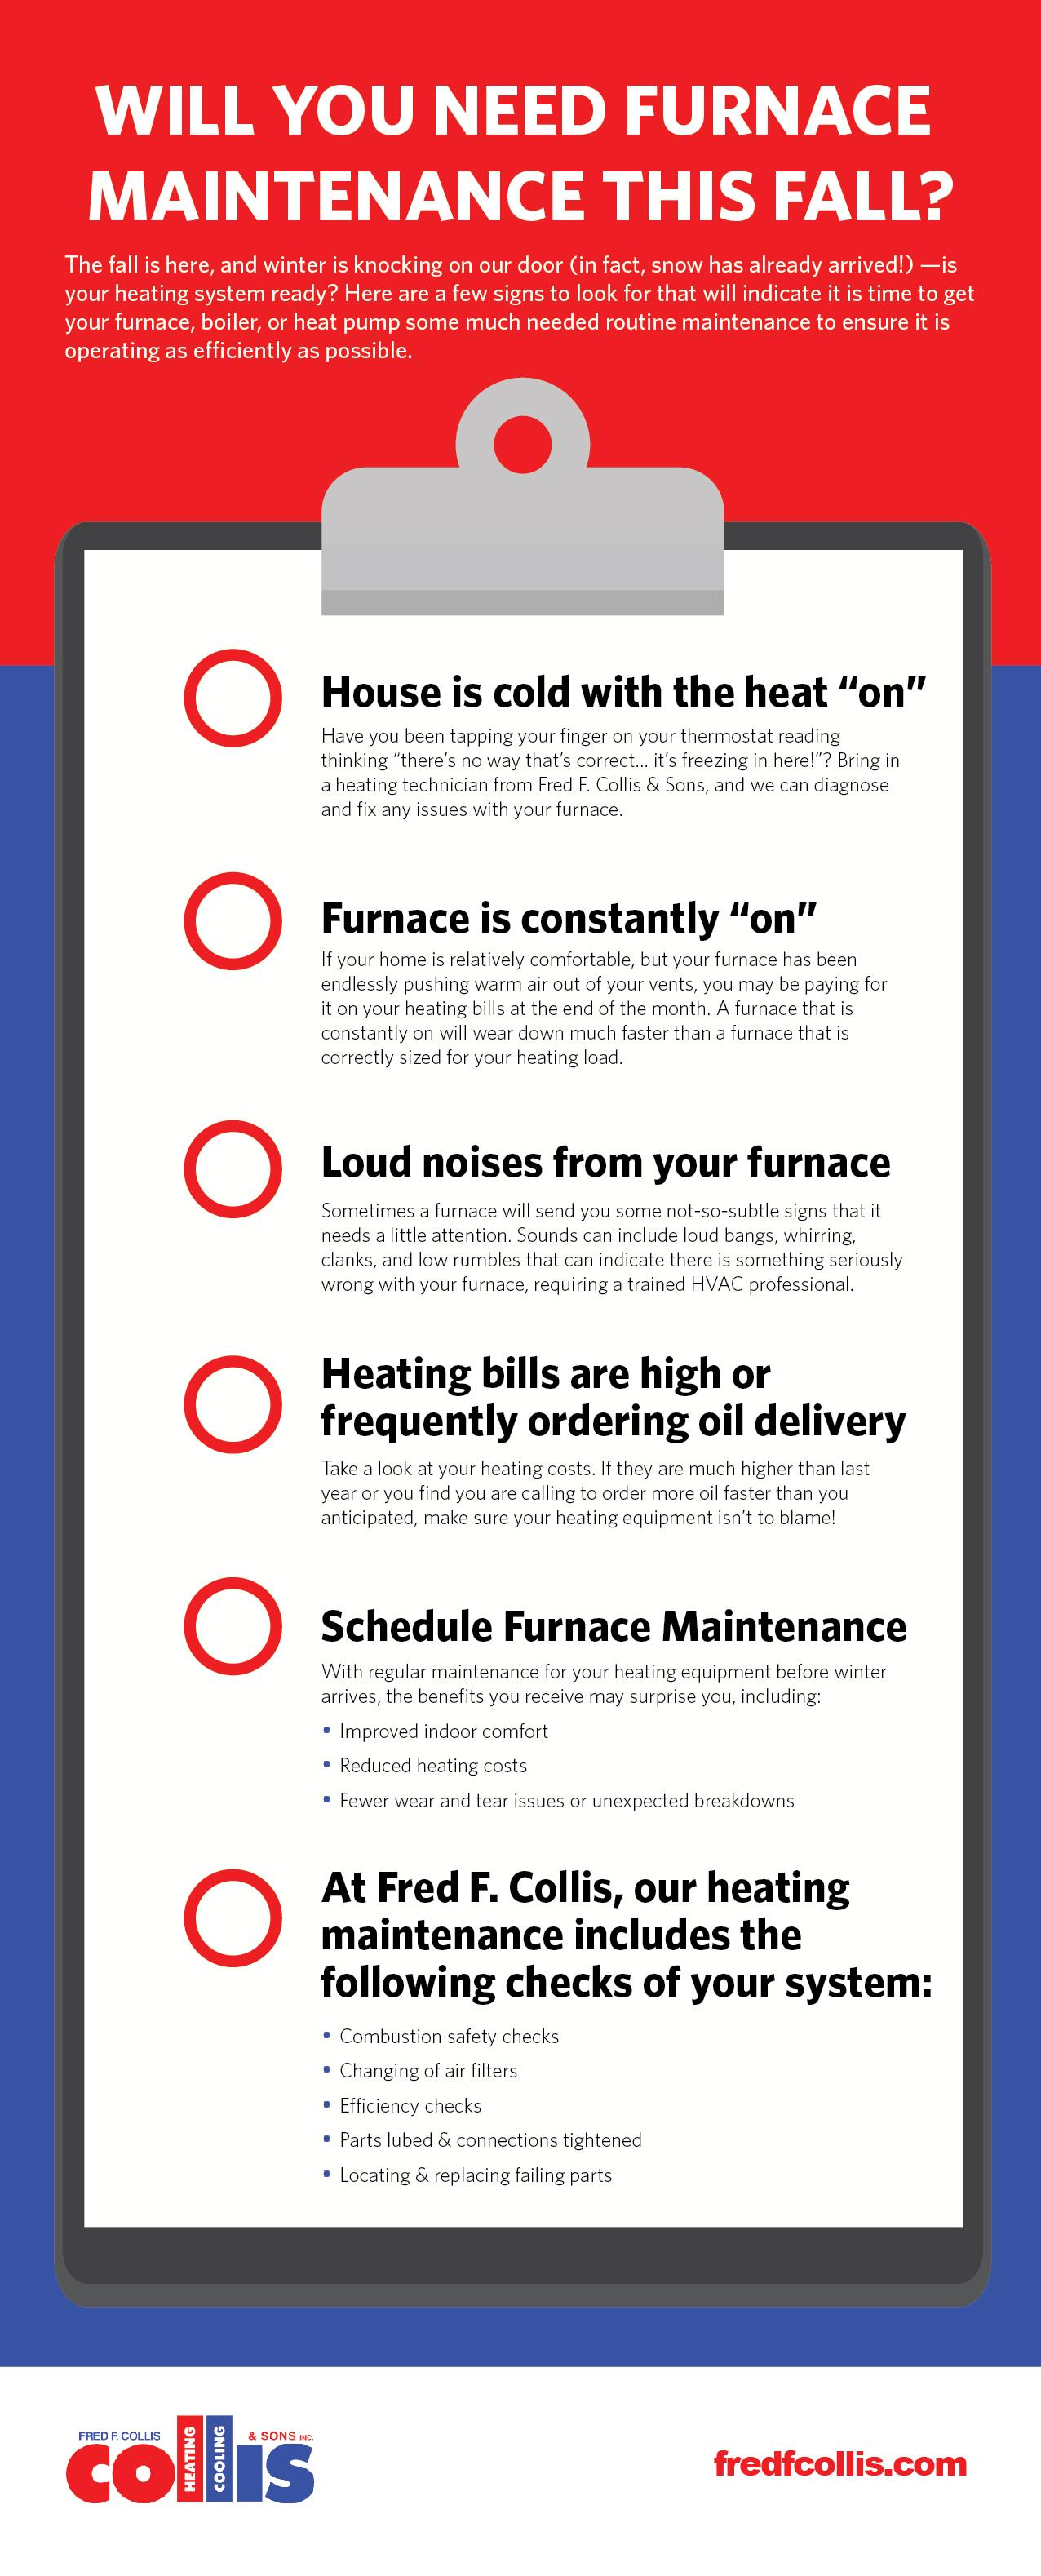 Will You Need Furnace Maintenance this Fall? infographic